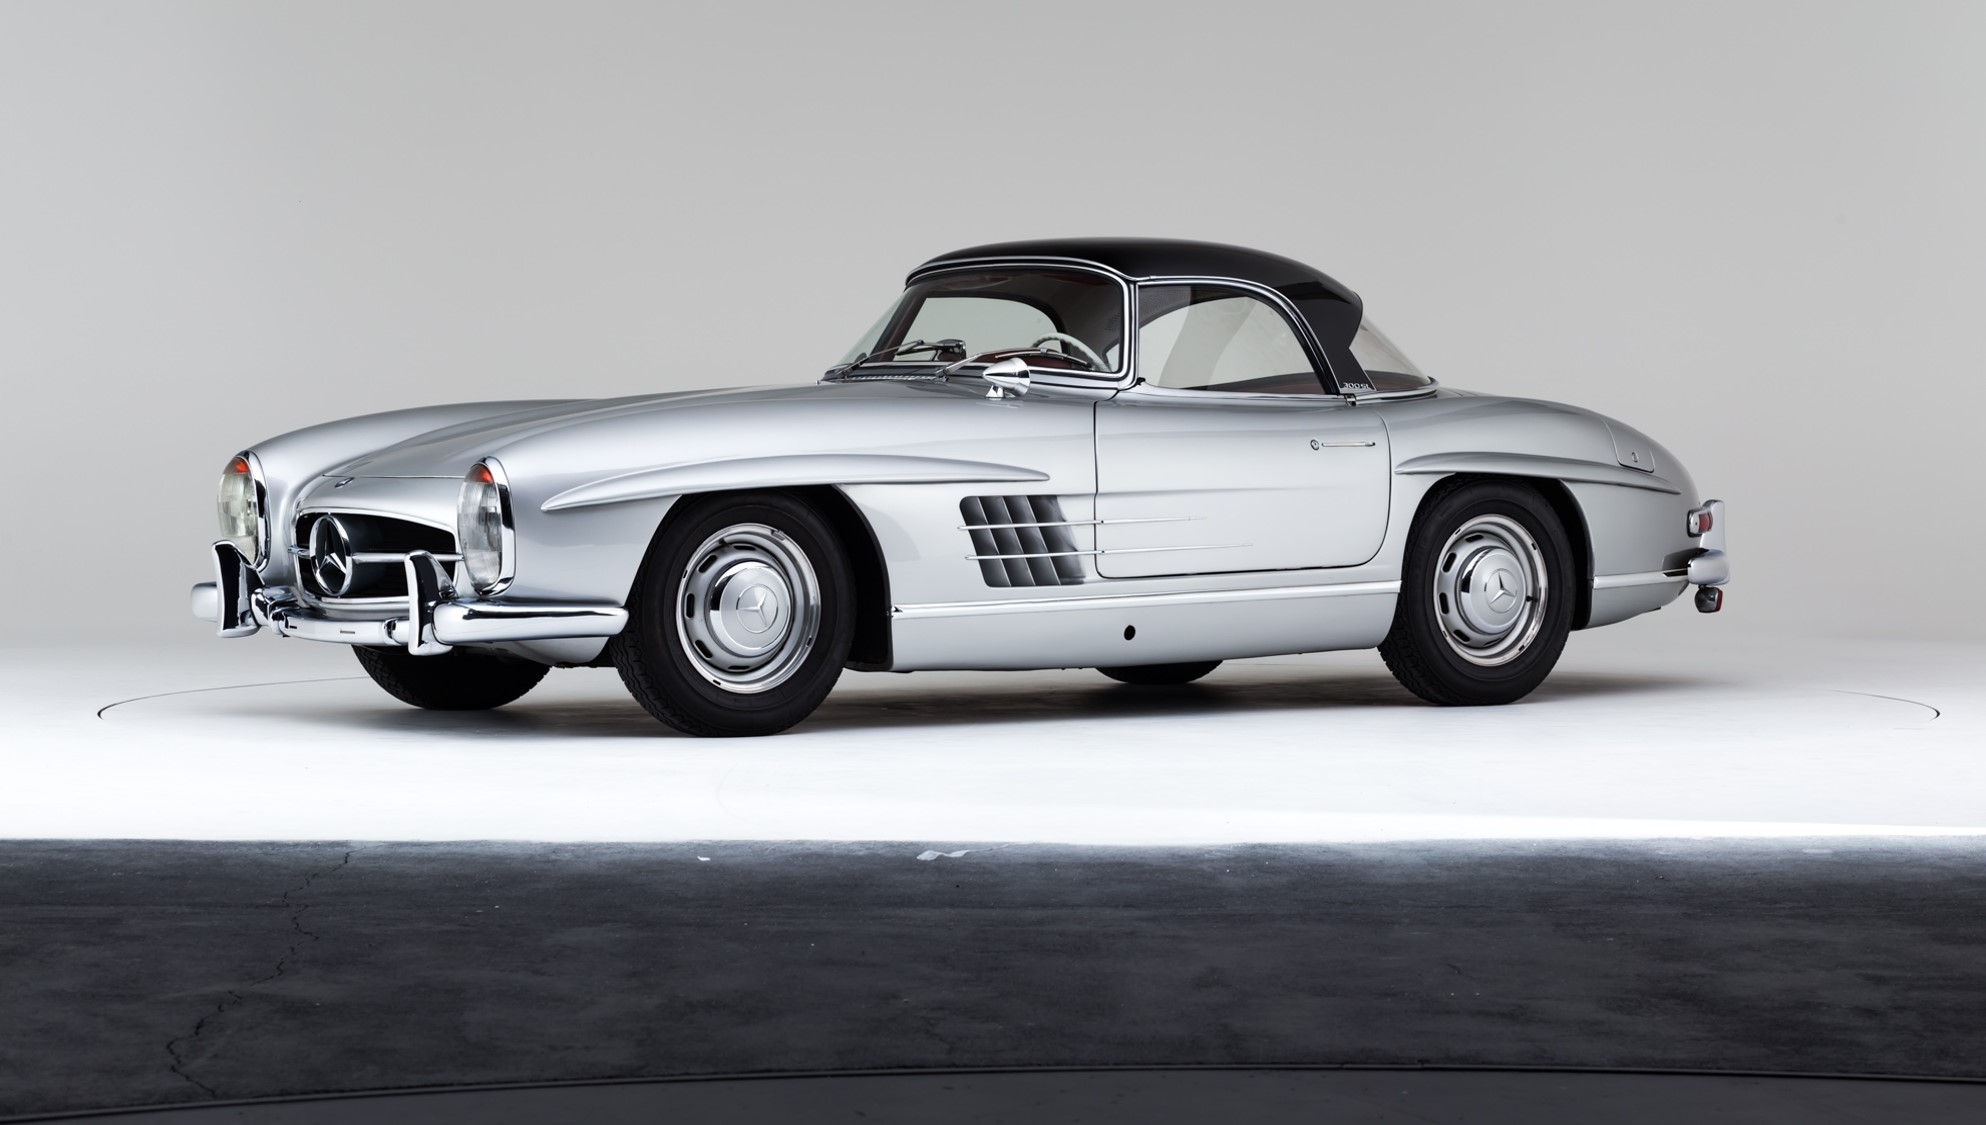 Classic Mercedes-Benz W198 300SL Roadster in silver with red interior and black  hardtop